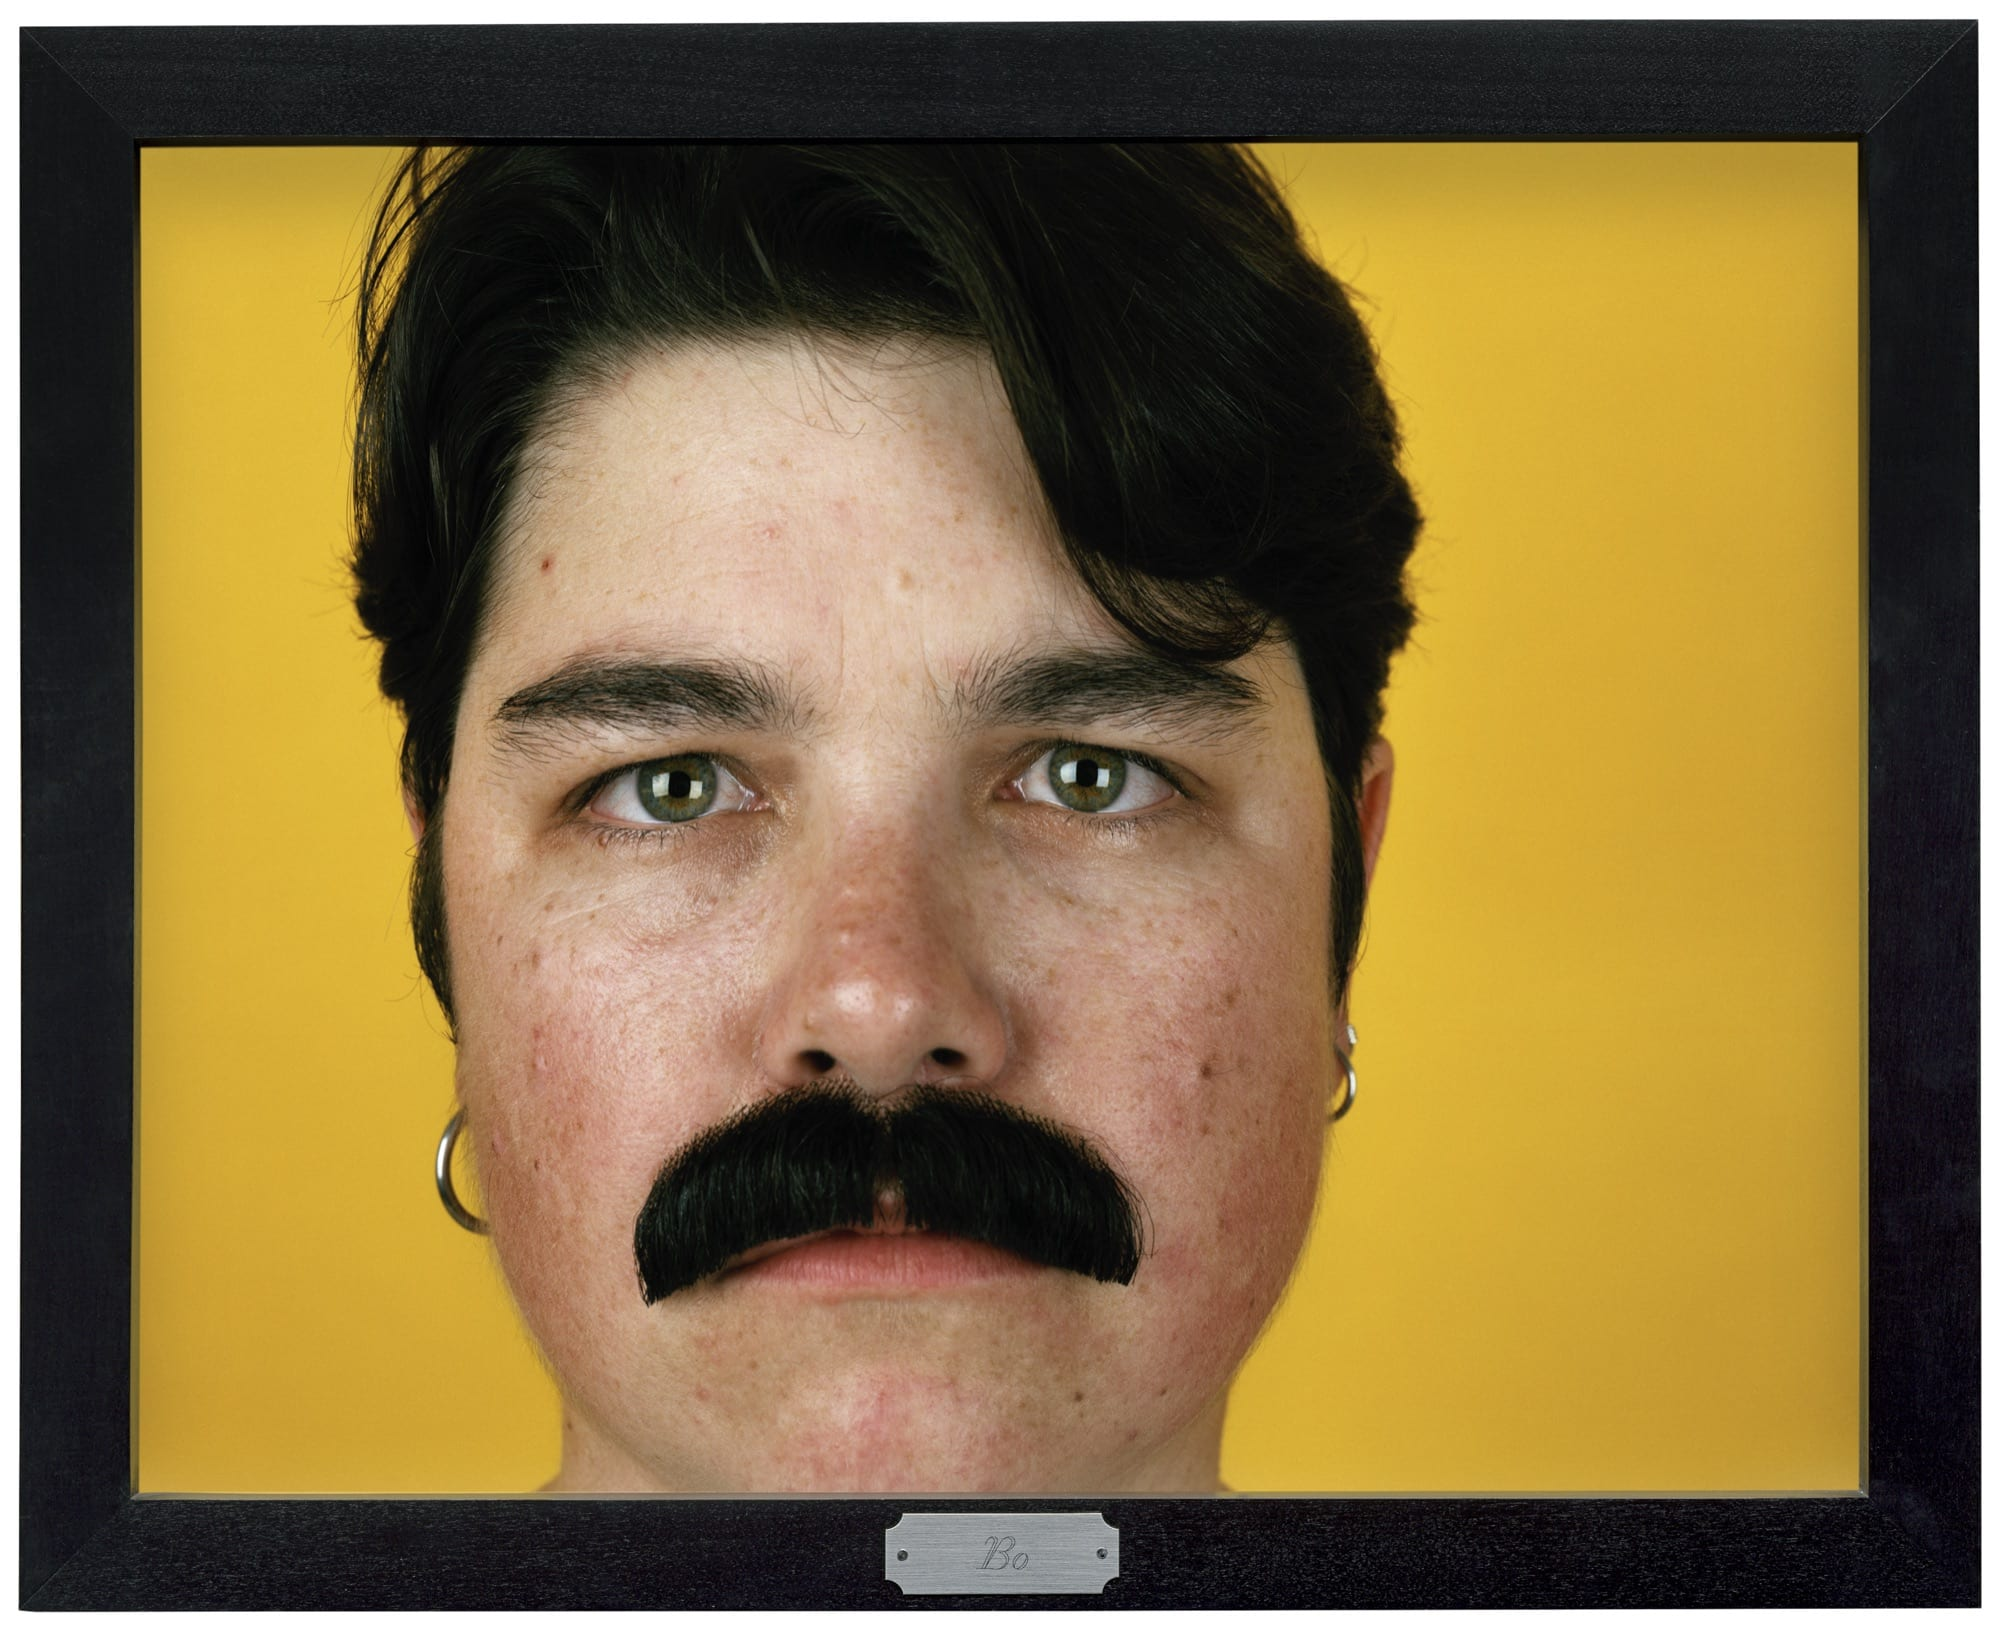 """Bo from """"Being and Having"""", 1991 Collection of Gregory R. Miller and Michael Wiener © Catherine Opie, Courtesy Regen Projects, Los Angeles; Thomas Dane Gallery, London; and Soloman R. Guggenheim Museum, New York"""